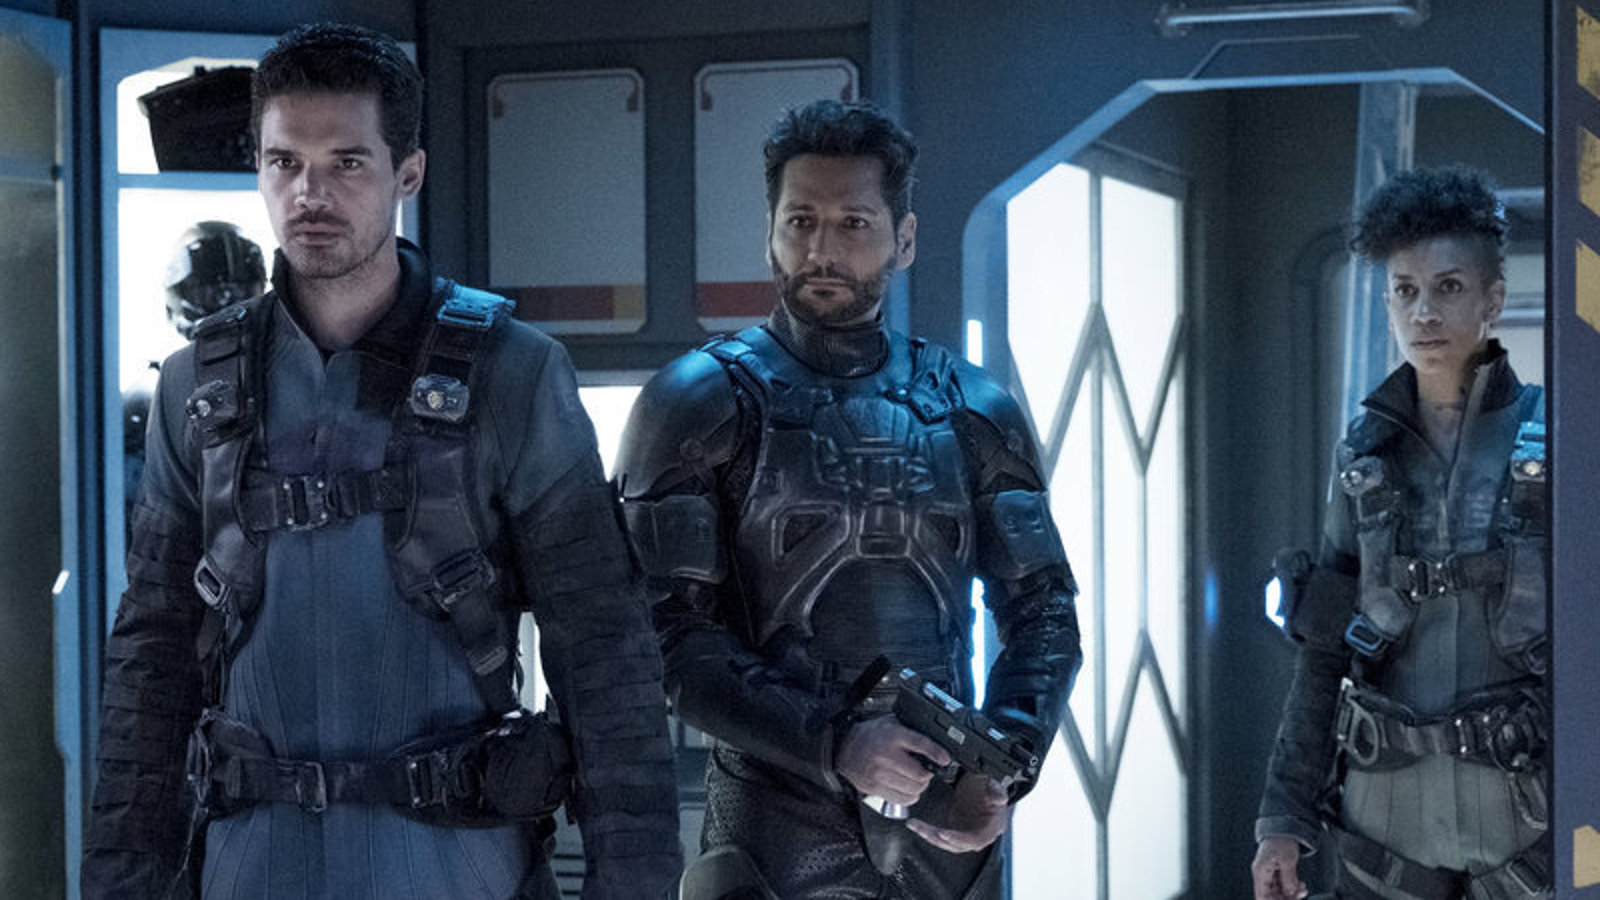 The Expanse's Third Season Hits Amazon Next Month, Belters Still Waiting for That Season 4 Premiere Date